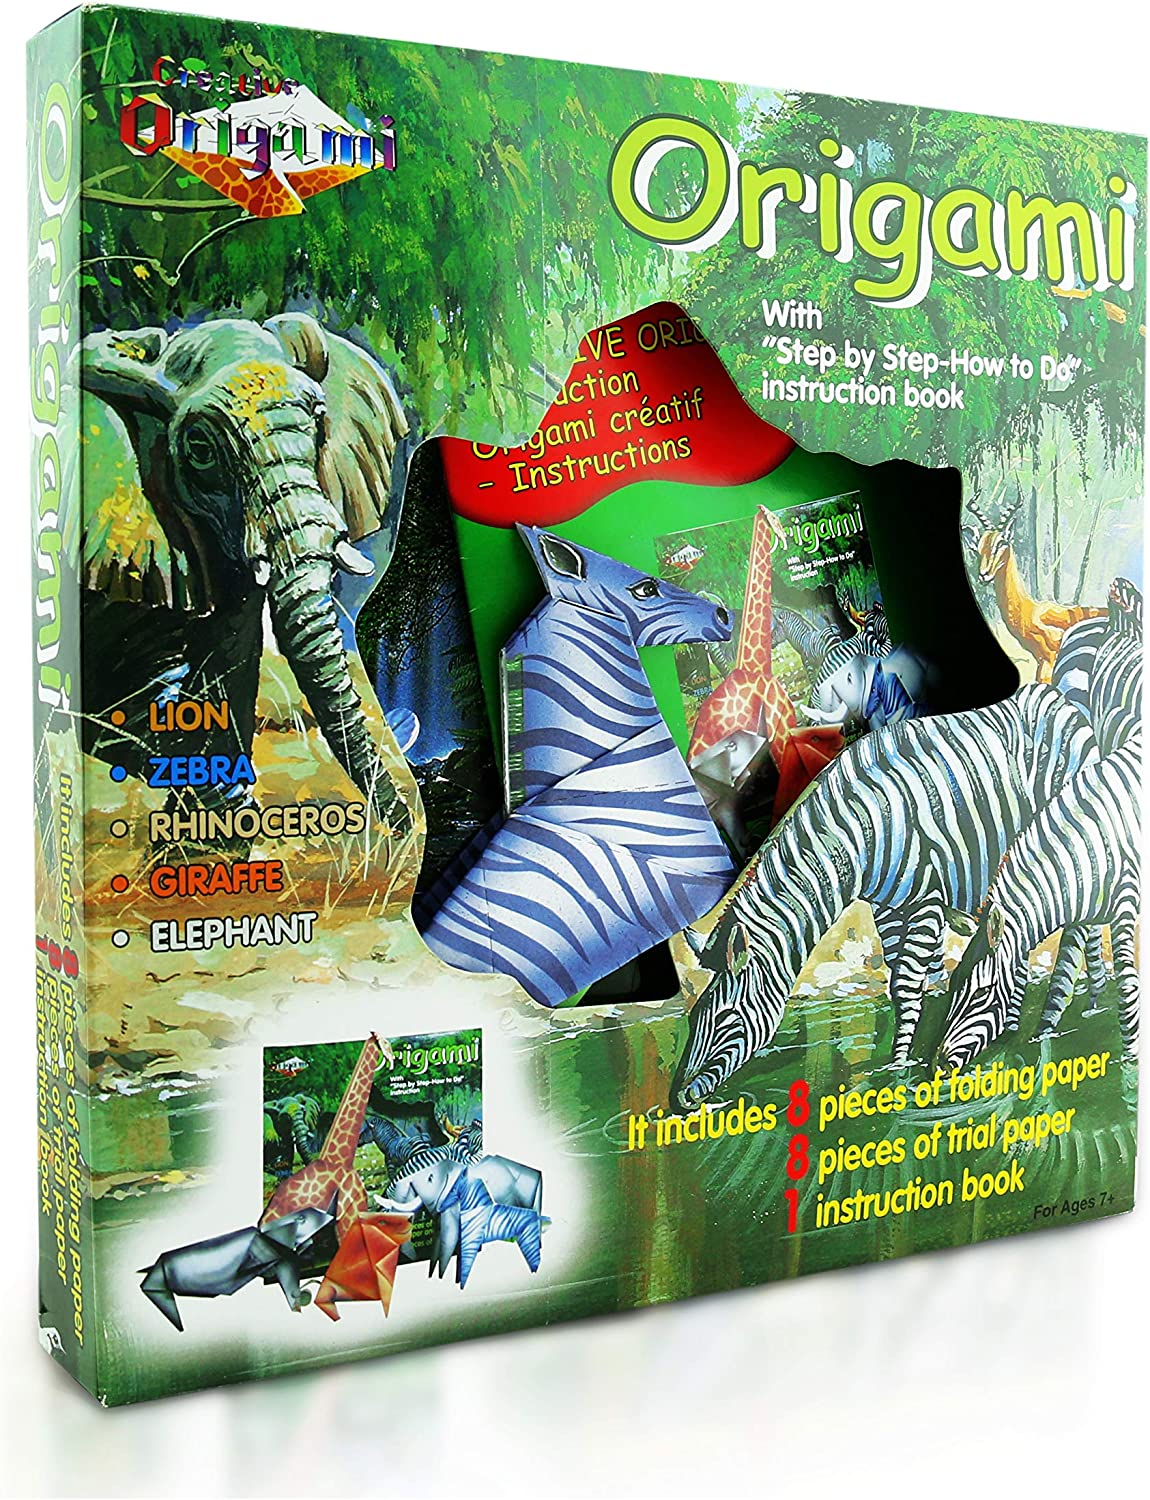 Origami Instructions photos, royalty-free images, graphics ... | 1500x1158